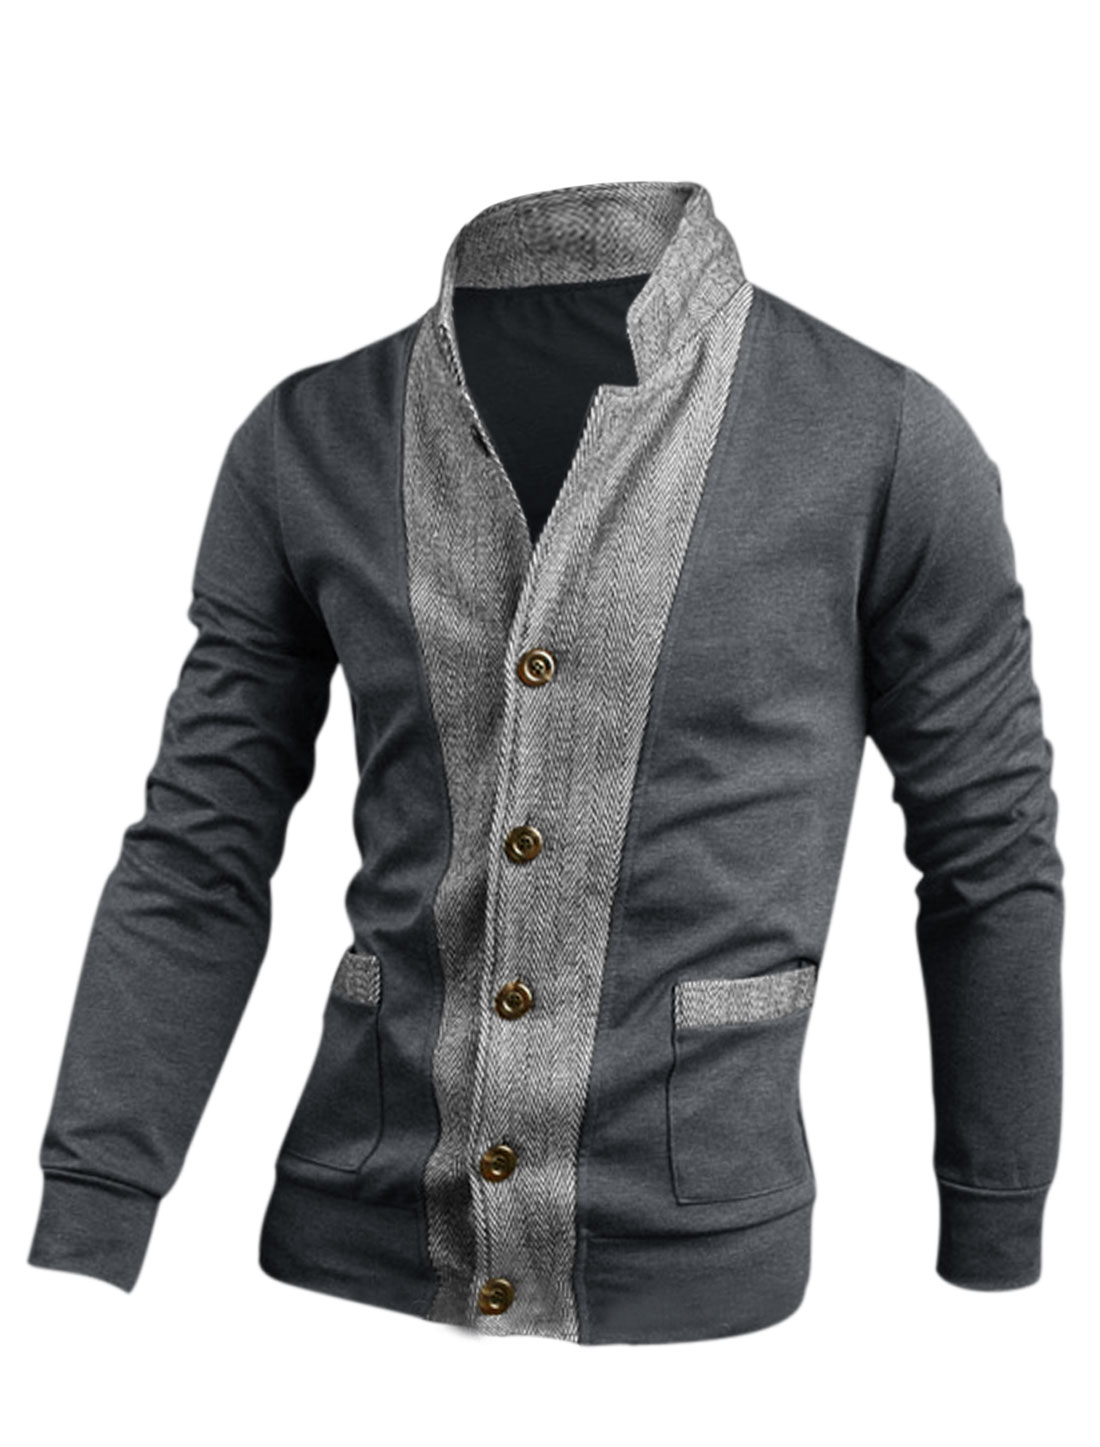 Men Gray Button Closure Front Pockets Stand Collar Jacket M